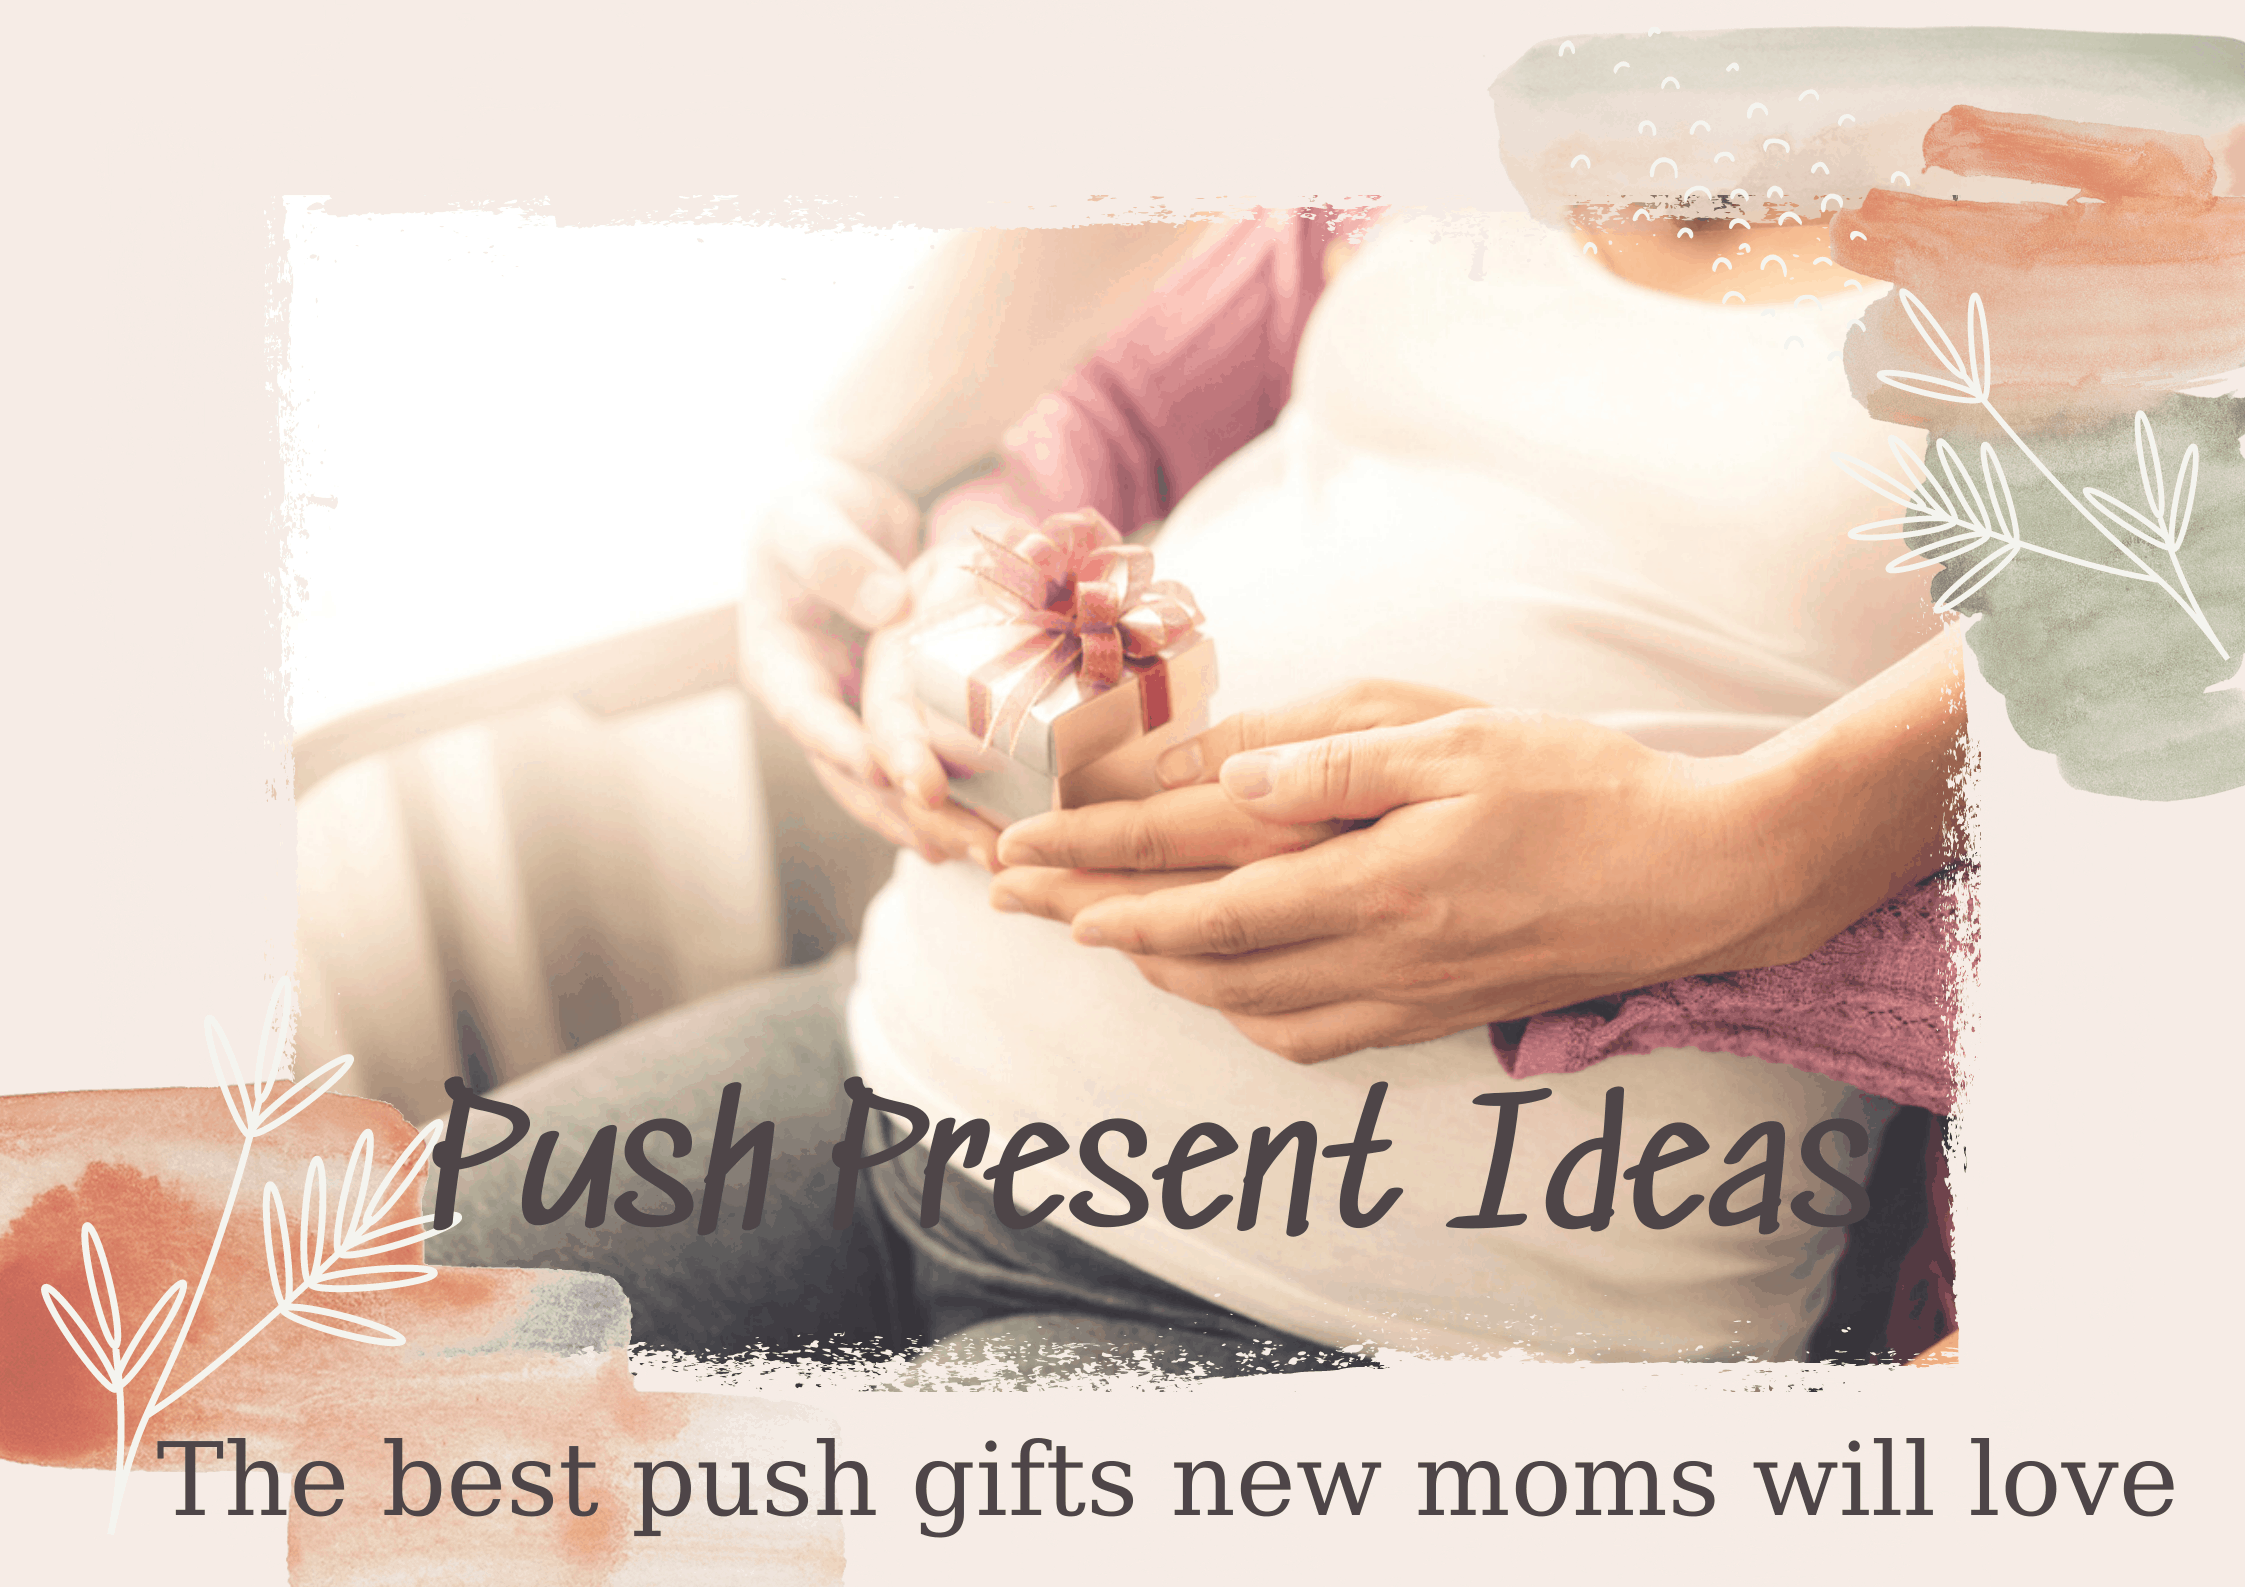 30+ Push Present Ideas for All the Wonderful Moms in the World